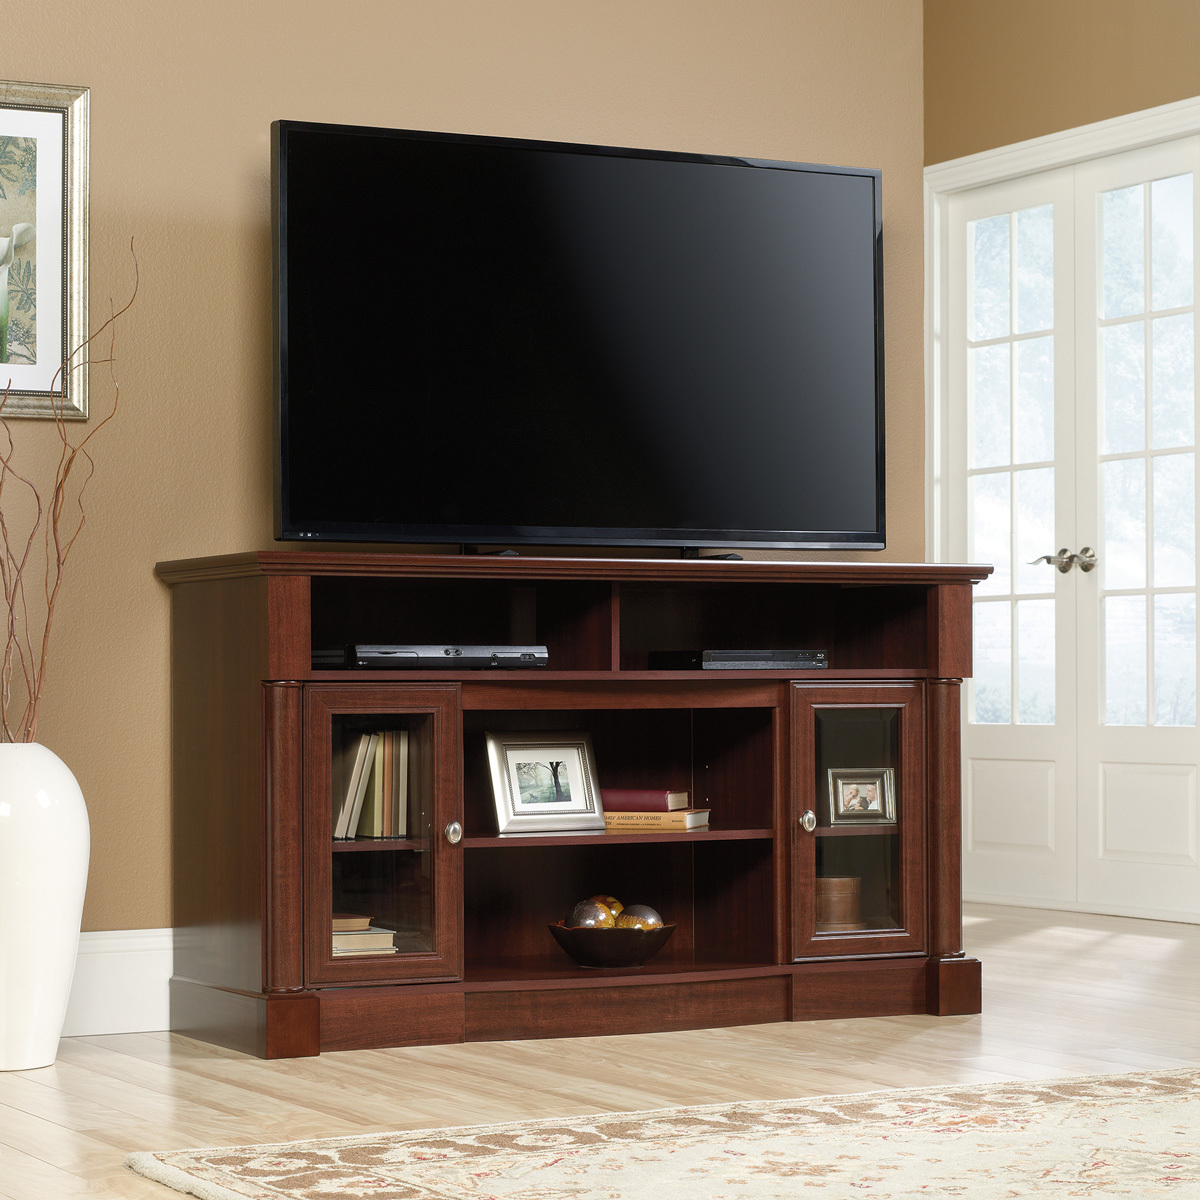 Sauder Palladia Fireplace Tv Stand 419117 The